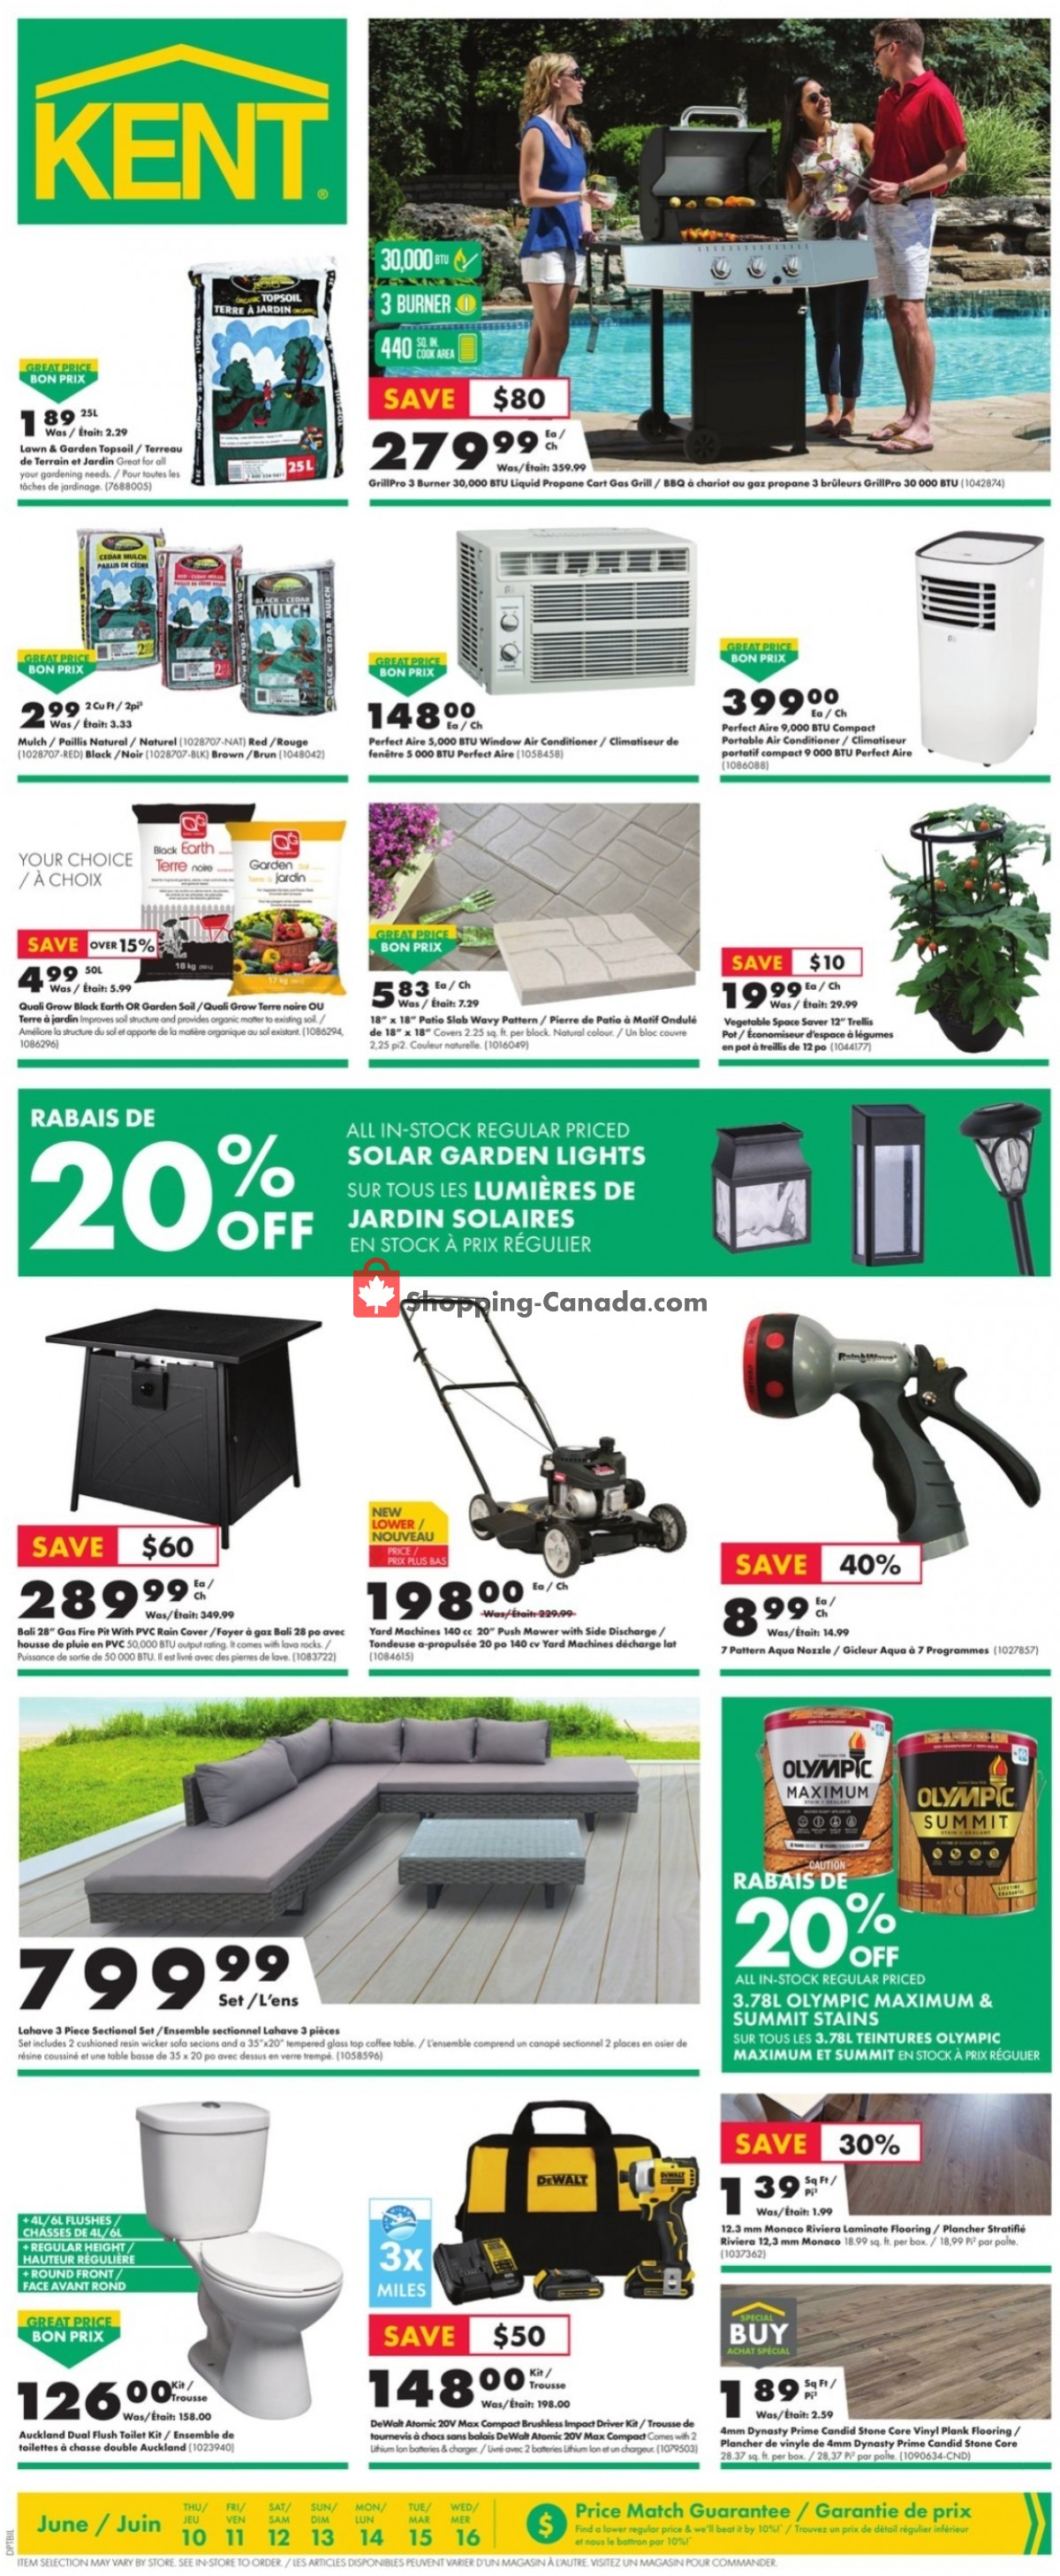 Flyer Kent Building Supplies Canada - from Thursday June 10, 2021 to Wednesday June 16, 2021